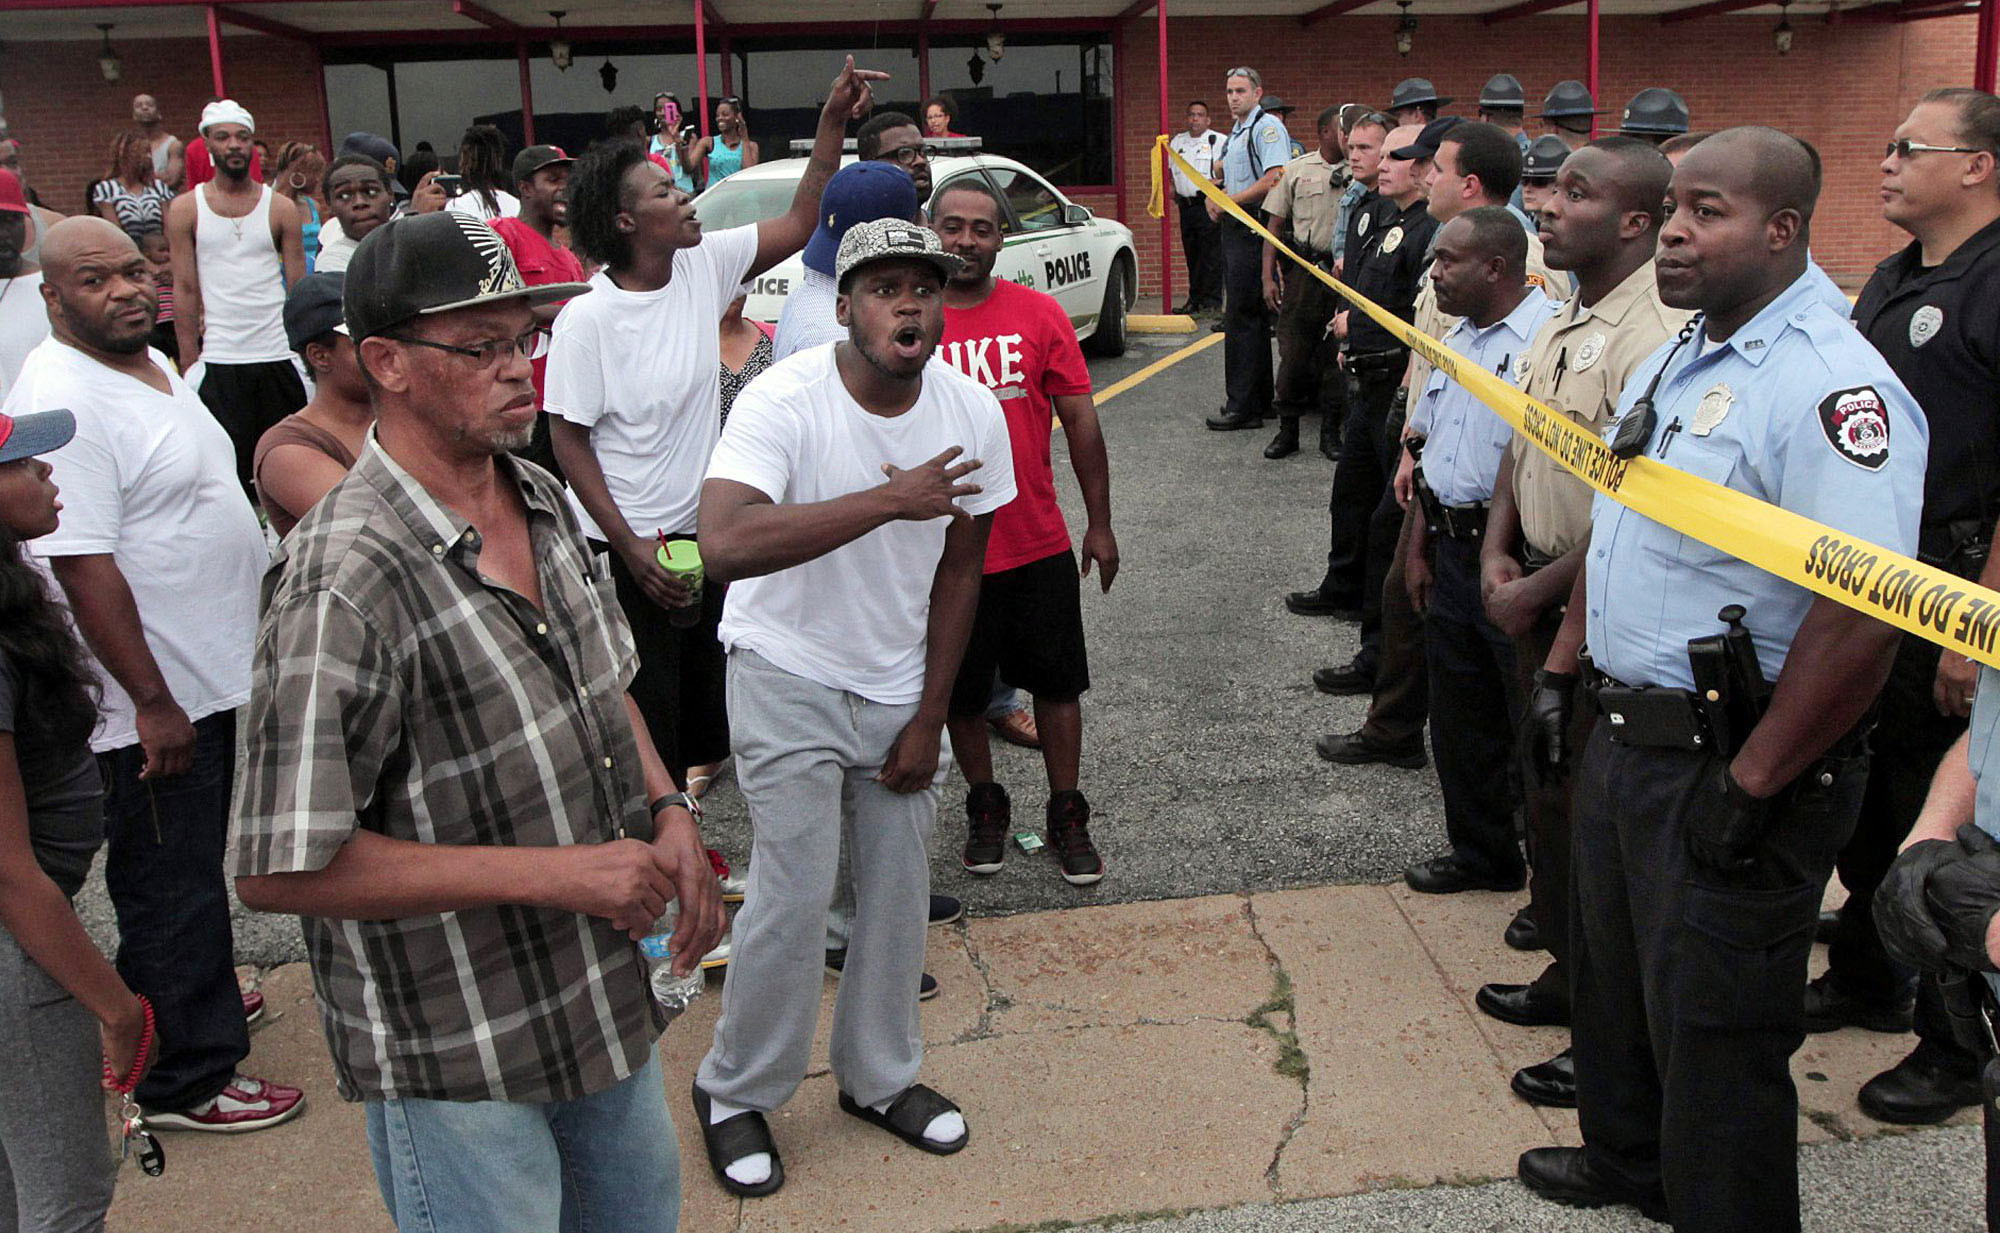 Protesters and police face off in St. Louis suburb over ...